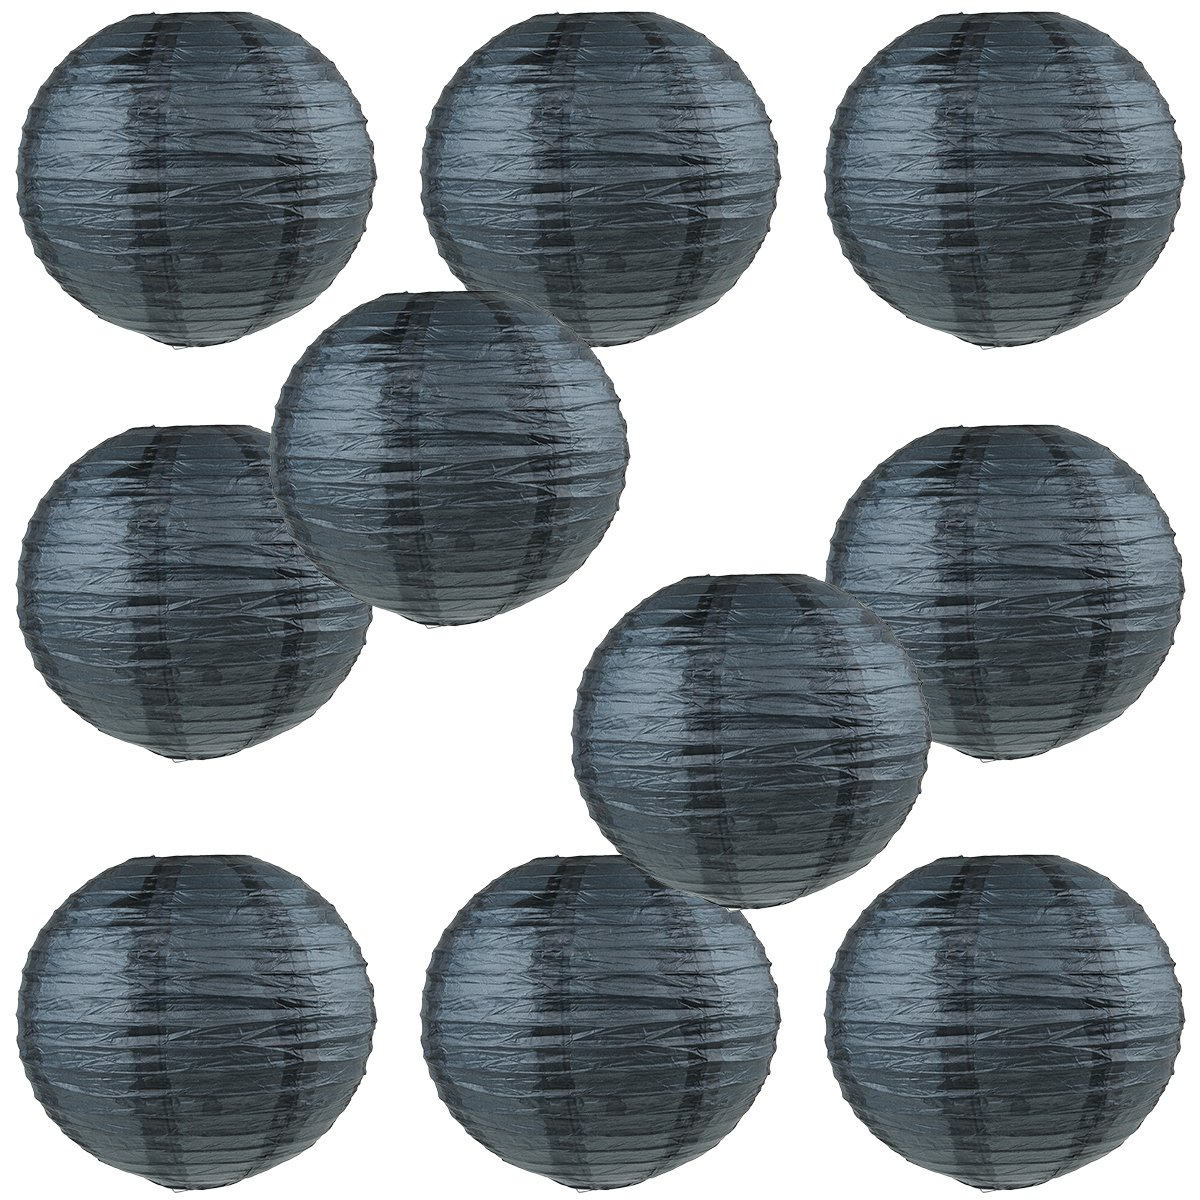 WYZworks Round Paper Lanterns 10 Pack (Black, 8'') - with 8'', 10'', 12'', 14'', 16'' option